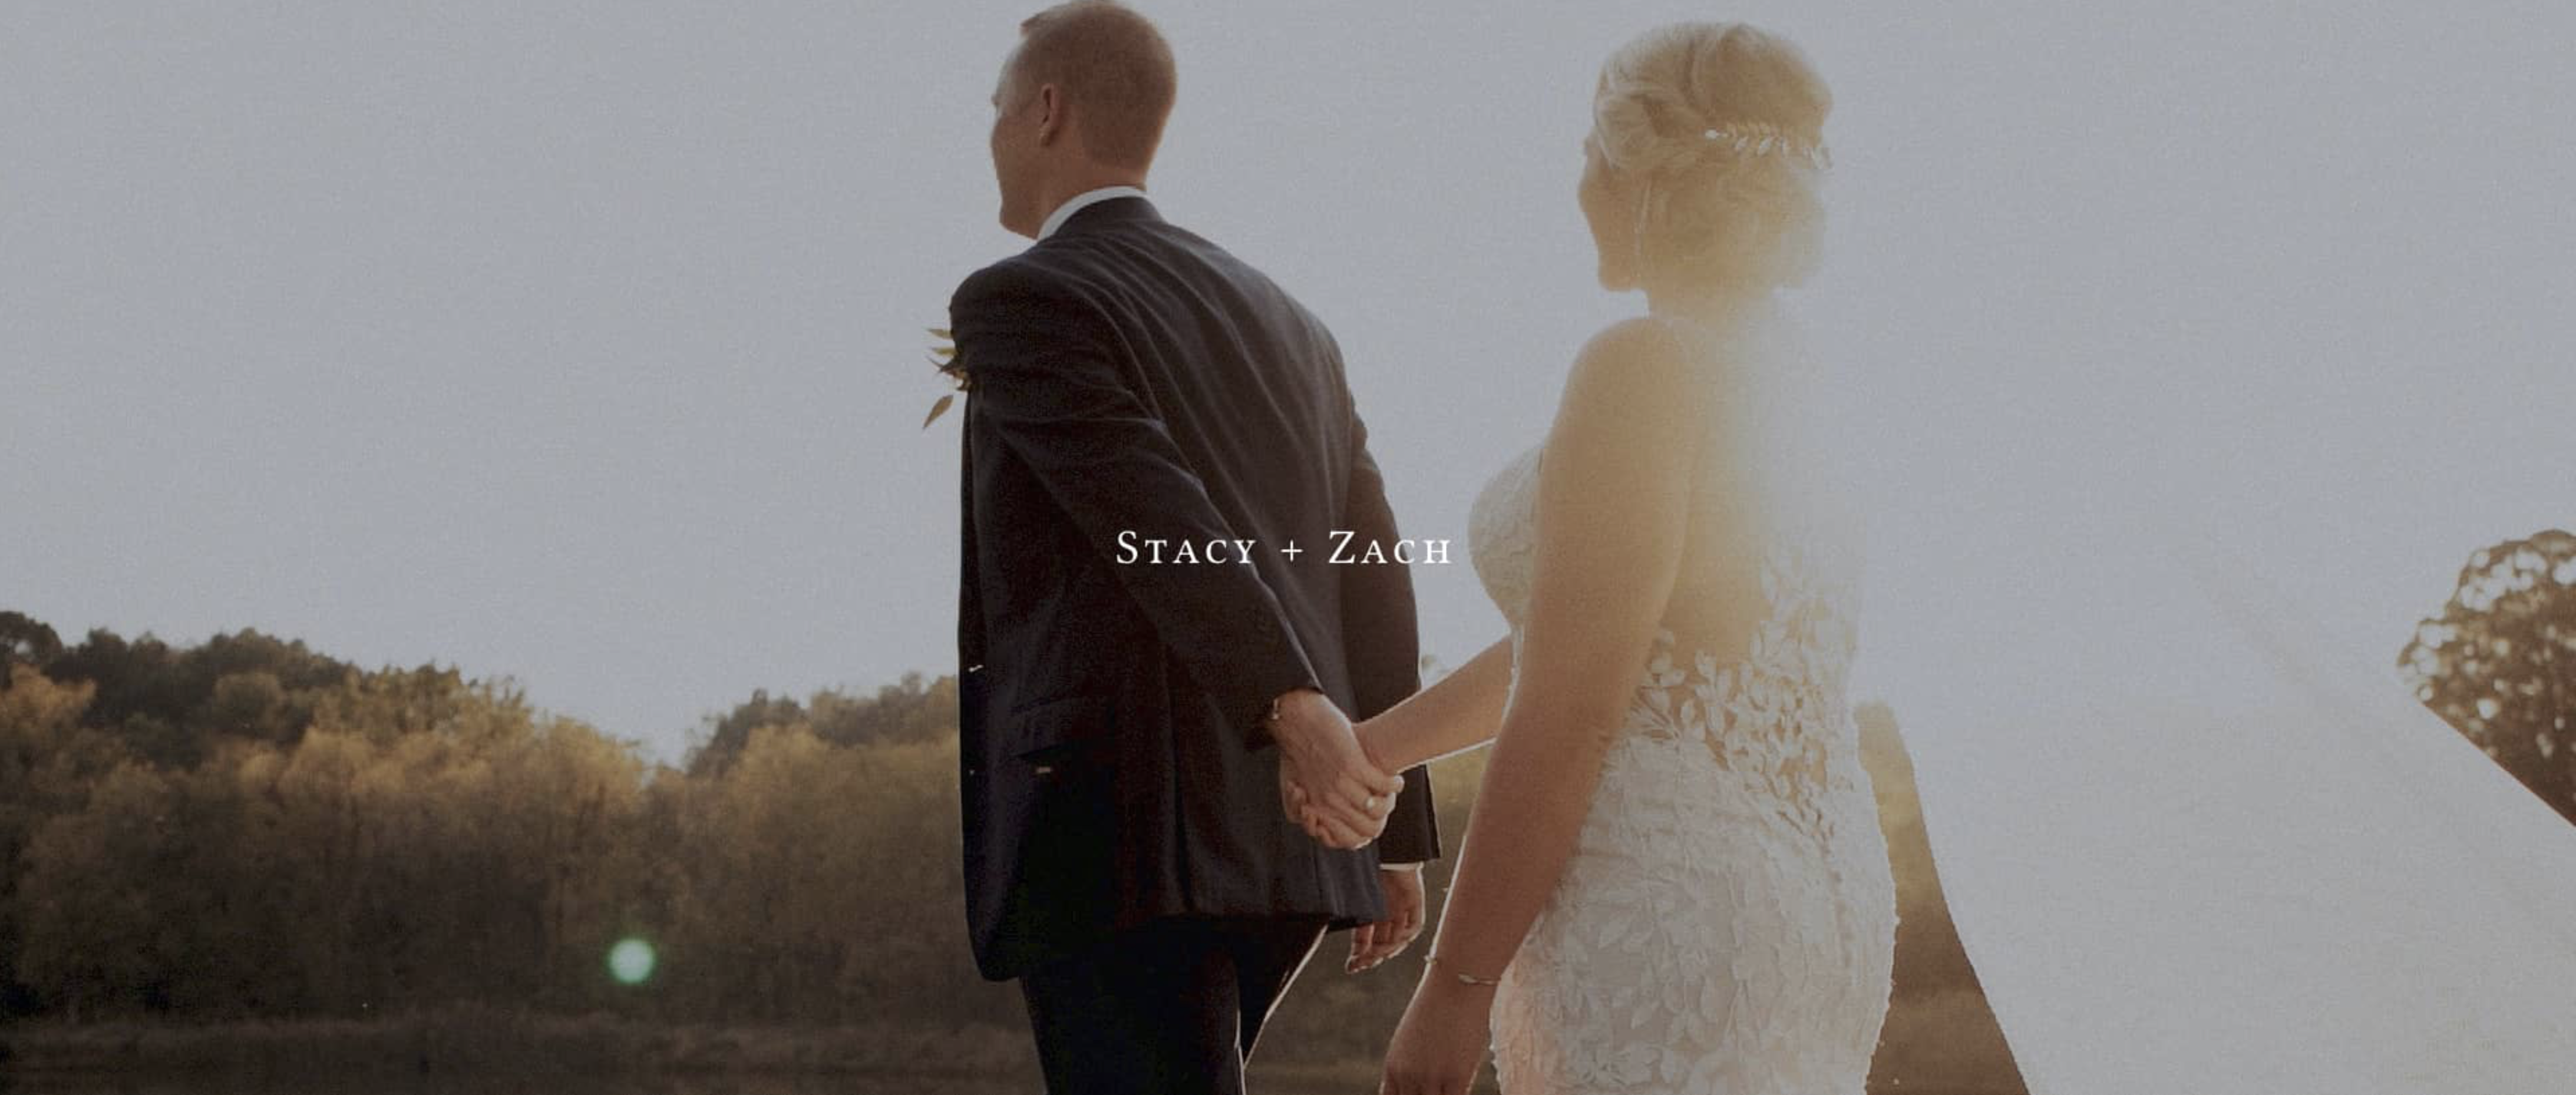 Stacy + Zach | New Douglas, Illinois | Private Farm